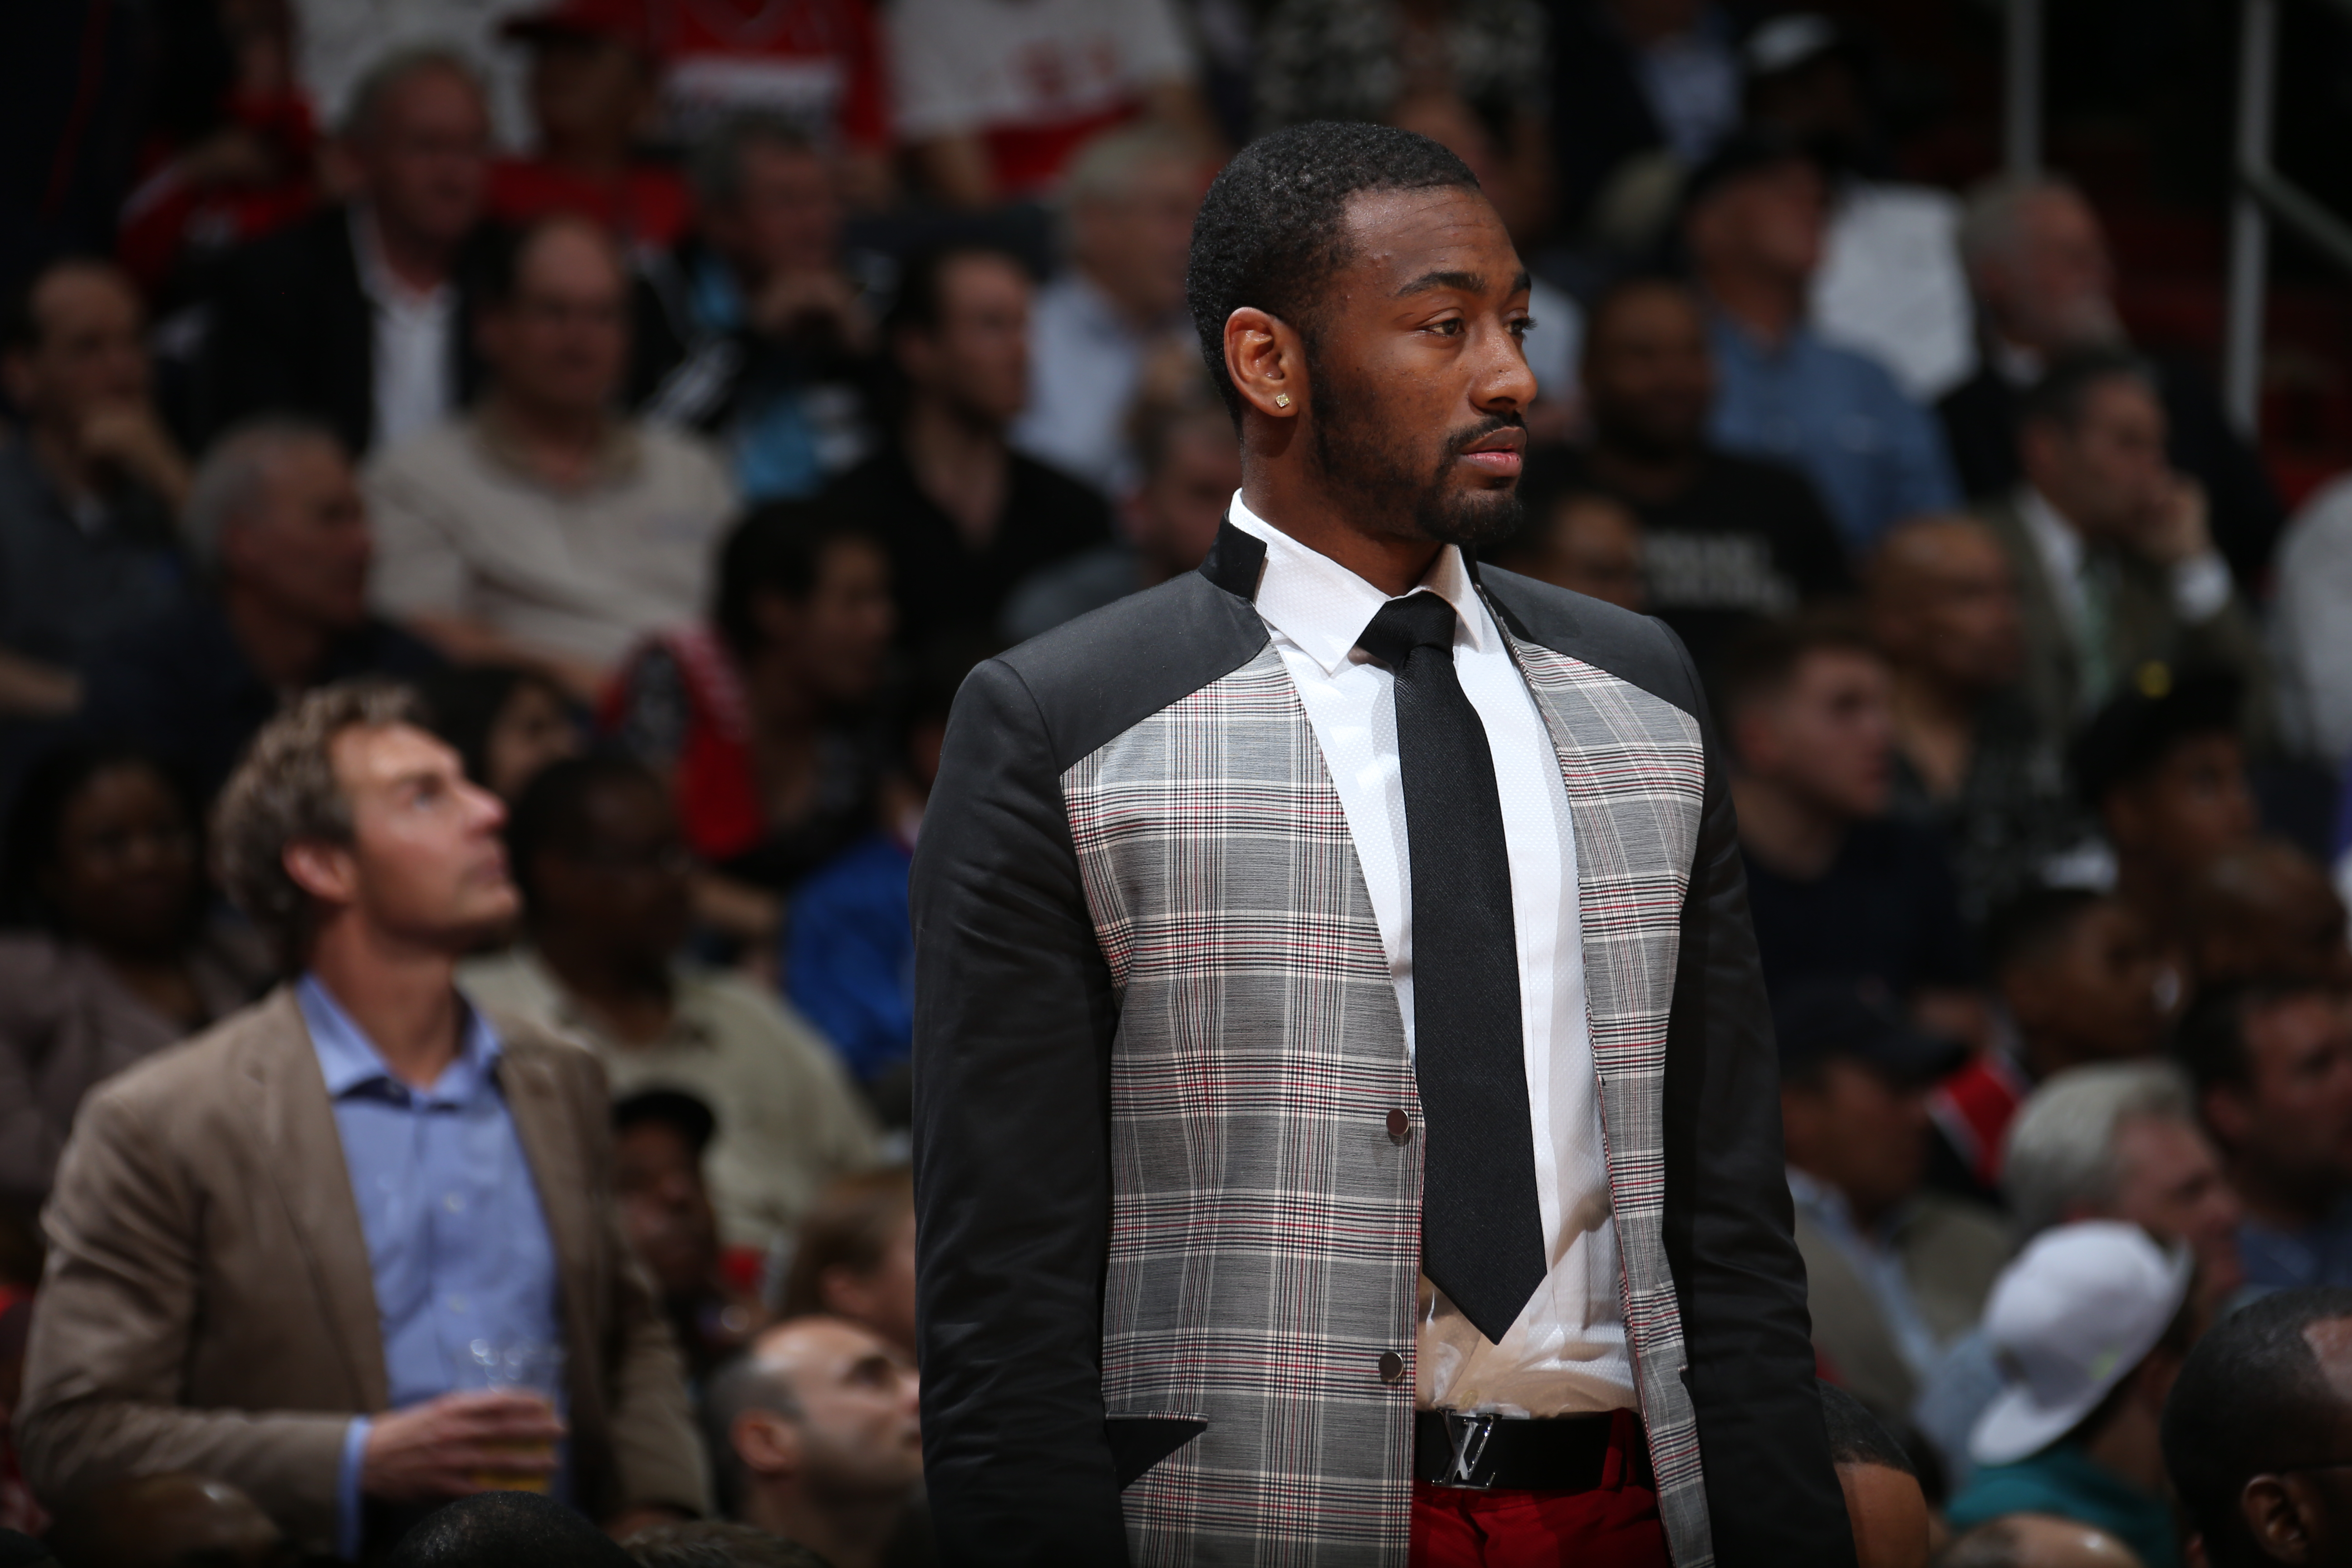 WASHINGTON, DC - MAY 11:  John Wall #2 of the Washington Wizards looks on against the Atlanta Hawks in Game Four of the Eastern Conference Semifinals during the 2015 NBA Playoffs on May 11, 2015 at the Verizon Center in Washington, DC. (Photo by Ned Dishm